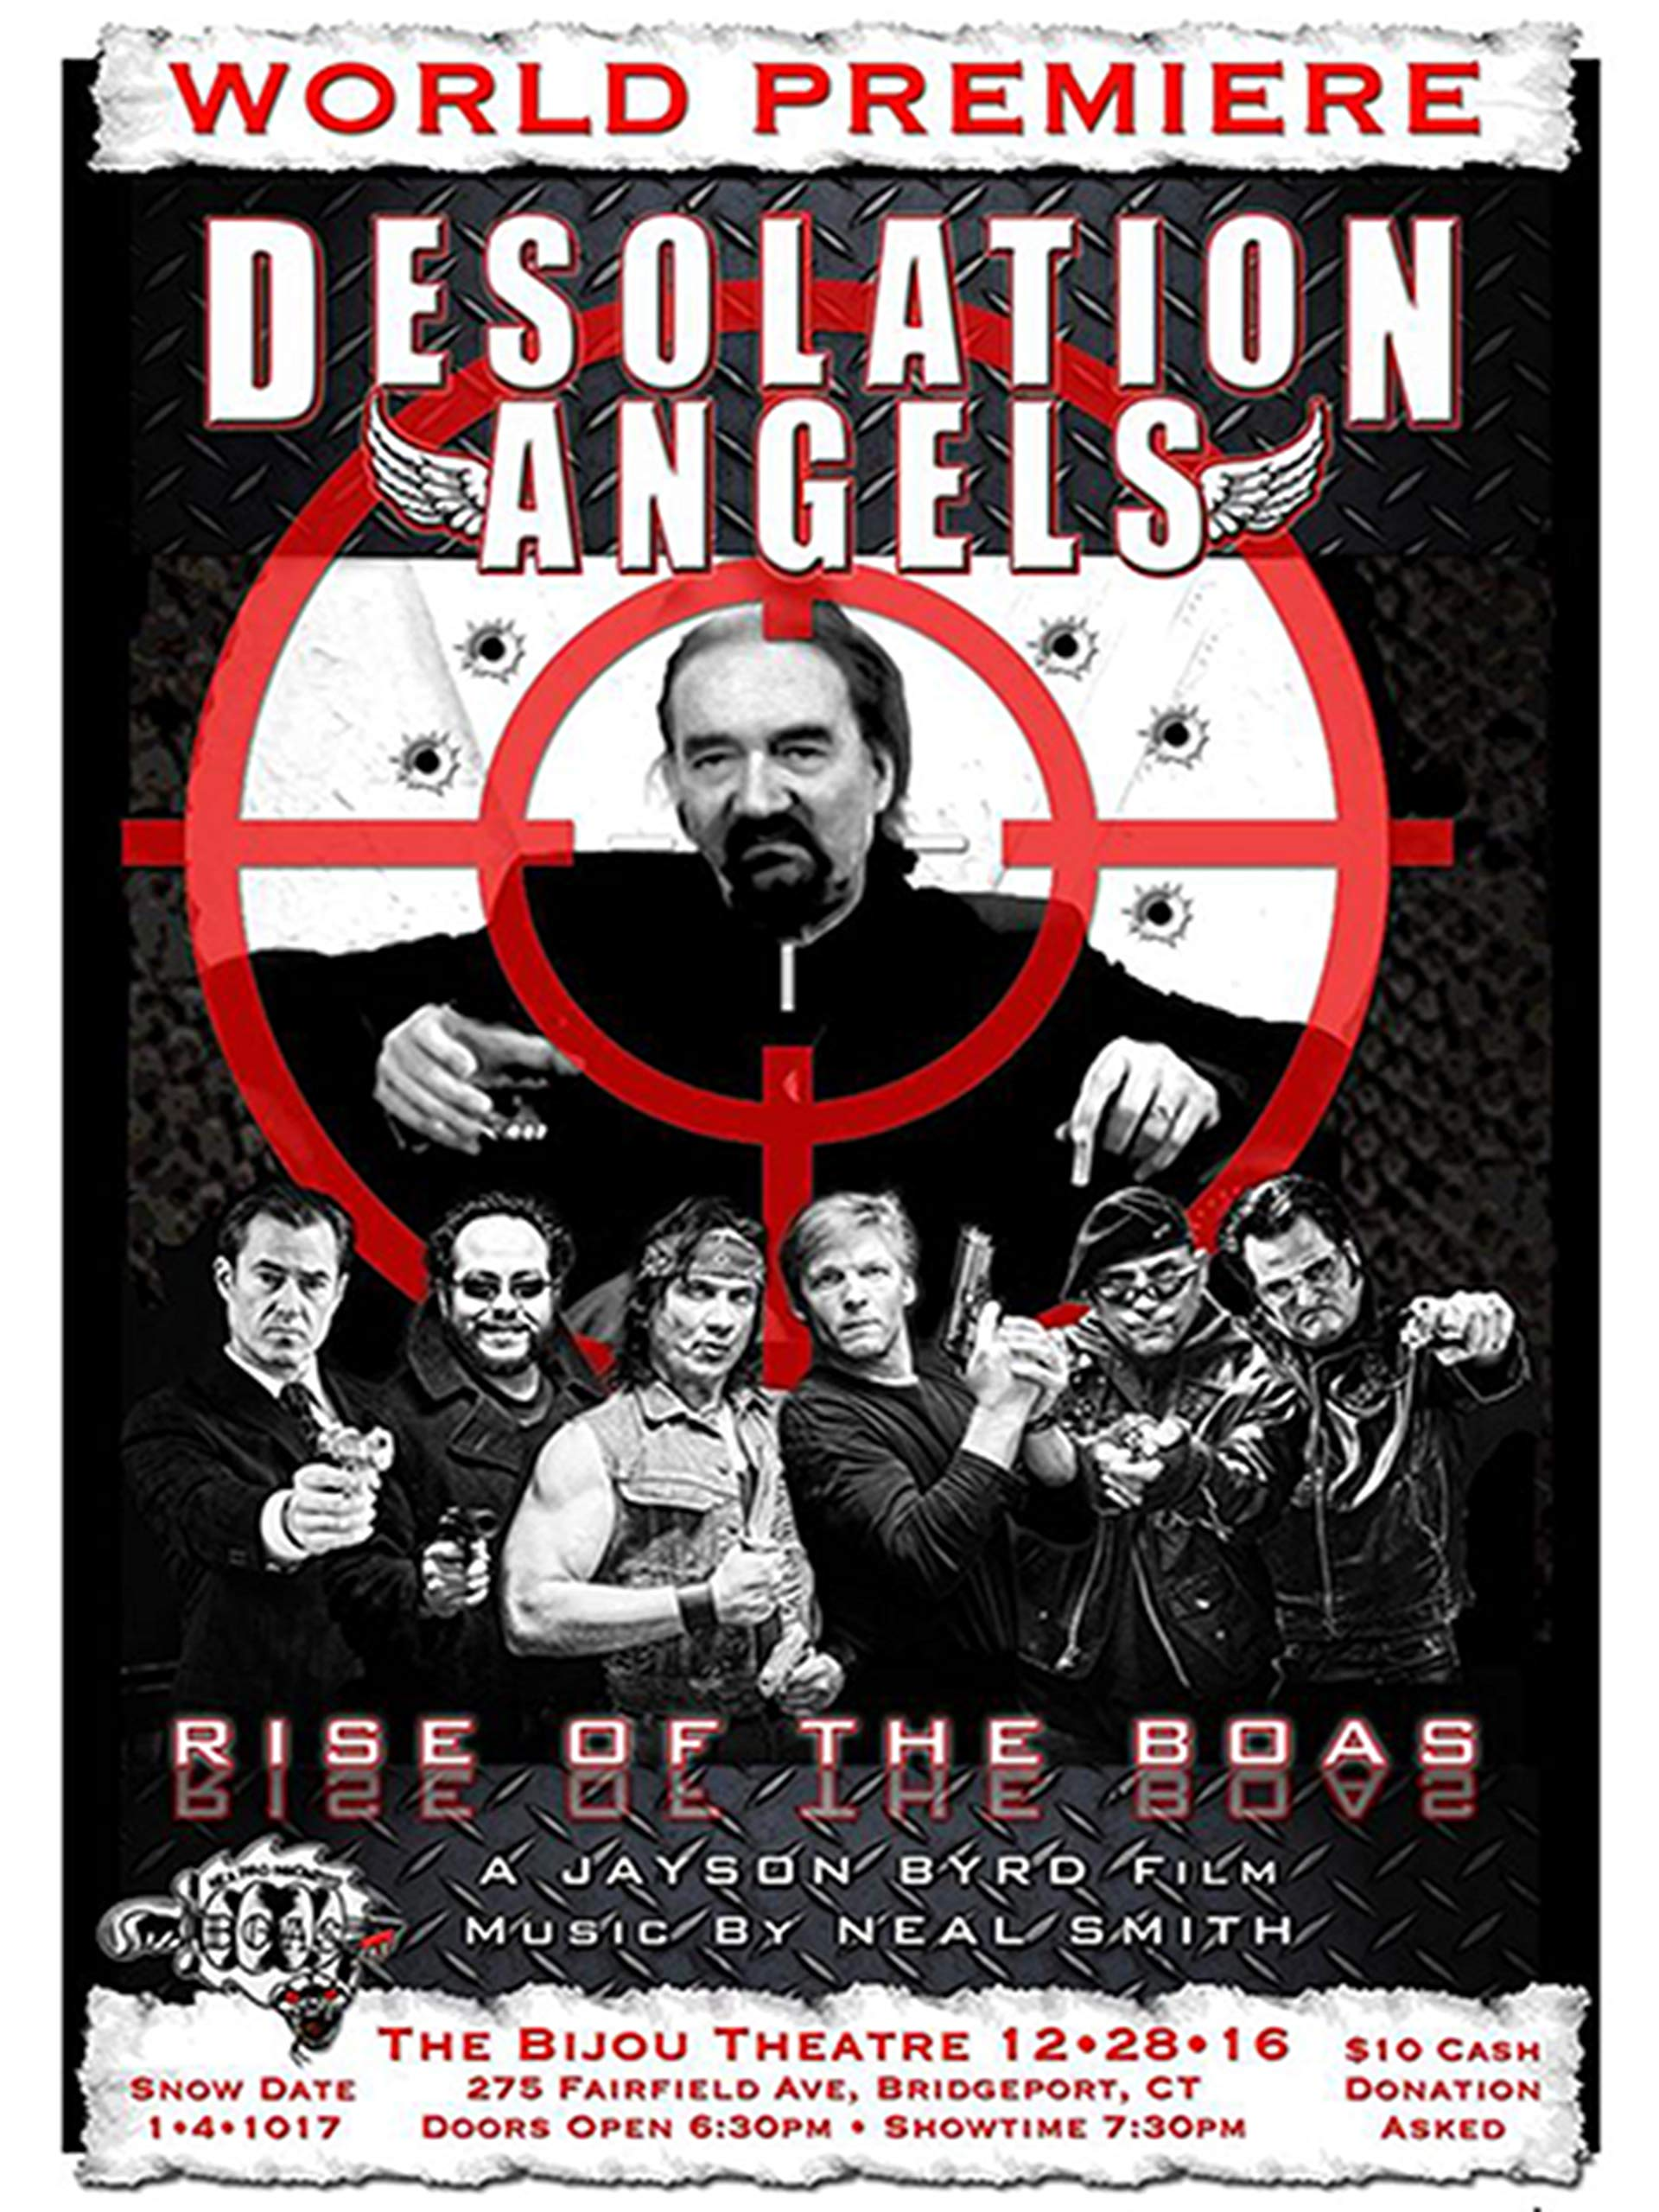 Desolation Angels/Rise of the BOAS